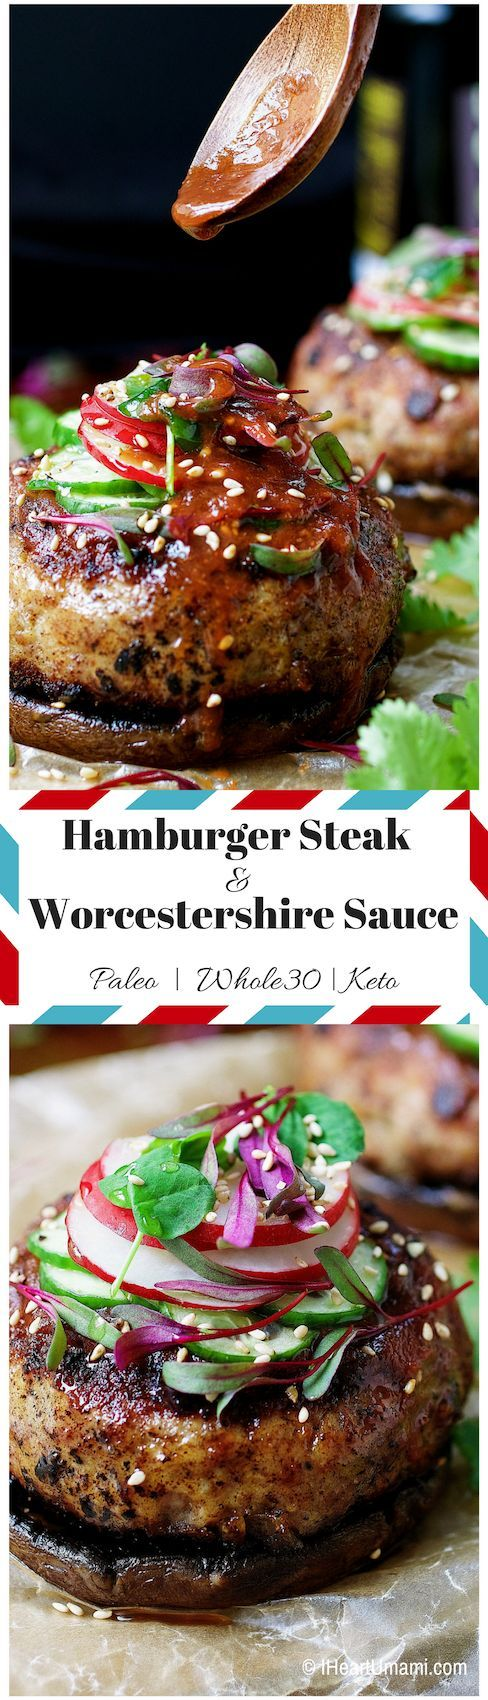 Low Carb Worcestershire Sauce Hamburger Steak. Paleo/Whole30/Keto Worcestershire sauce with Japanese-style Hamburger steak. Easy, tasty, juicy hamburger with no added sugar Worcestershire sauce. No pork would use all beef.: